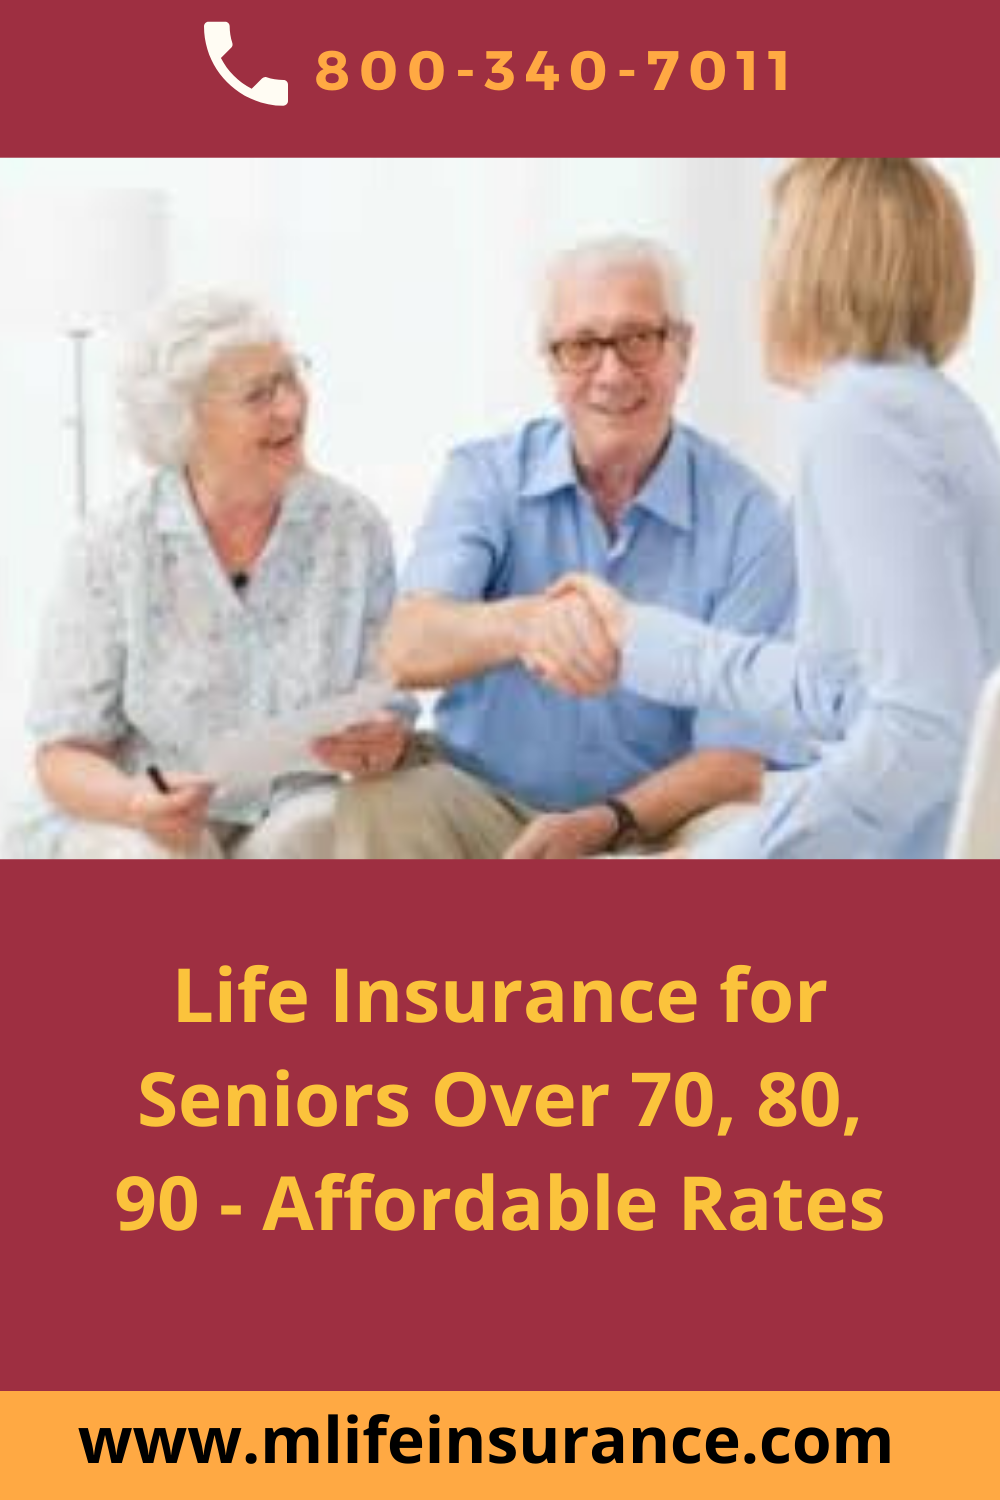 Life Insurance For Seniors Over 70, 80, 90 Affordable